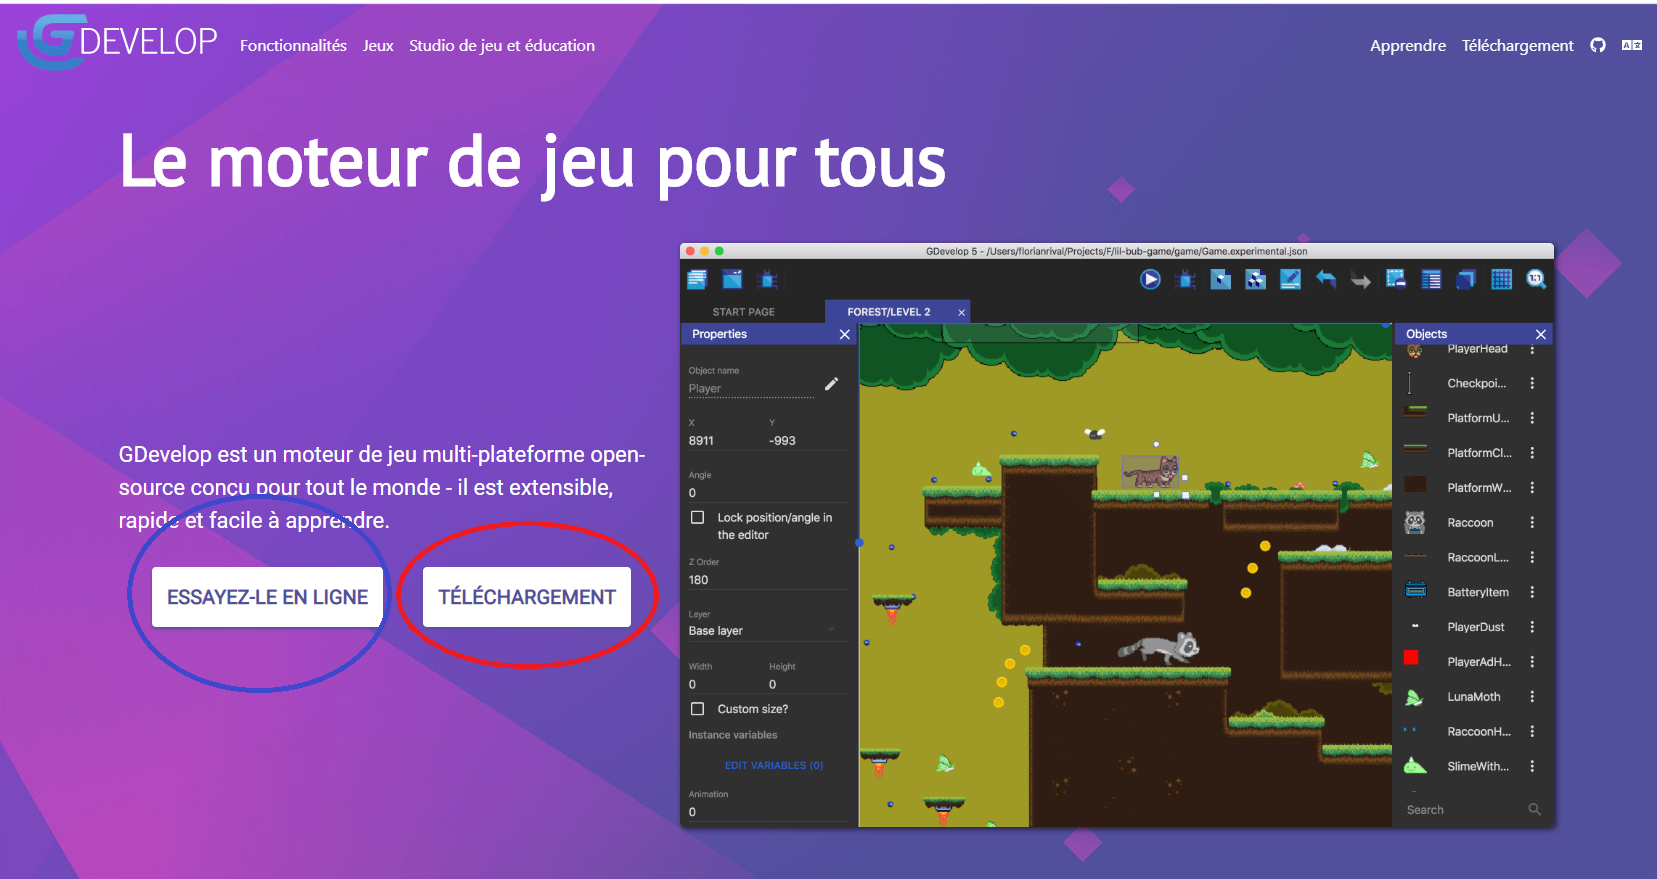 https://makeyourgame.fun//upload/users/Lyxyz/tuto_install_gdevelop/home_page_gdevelop-5e9d9d4ea7877.png